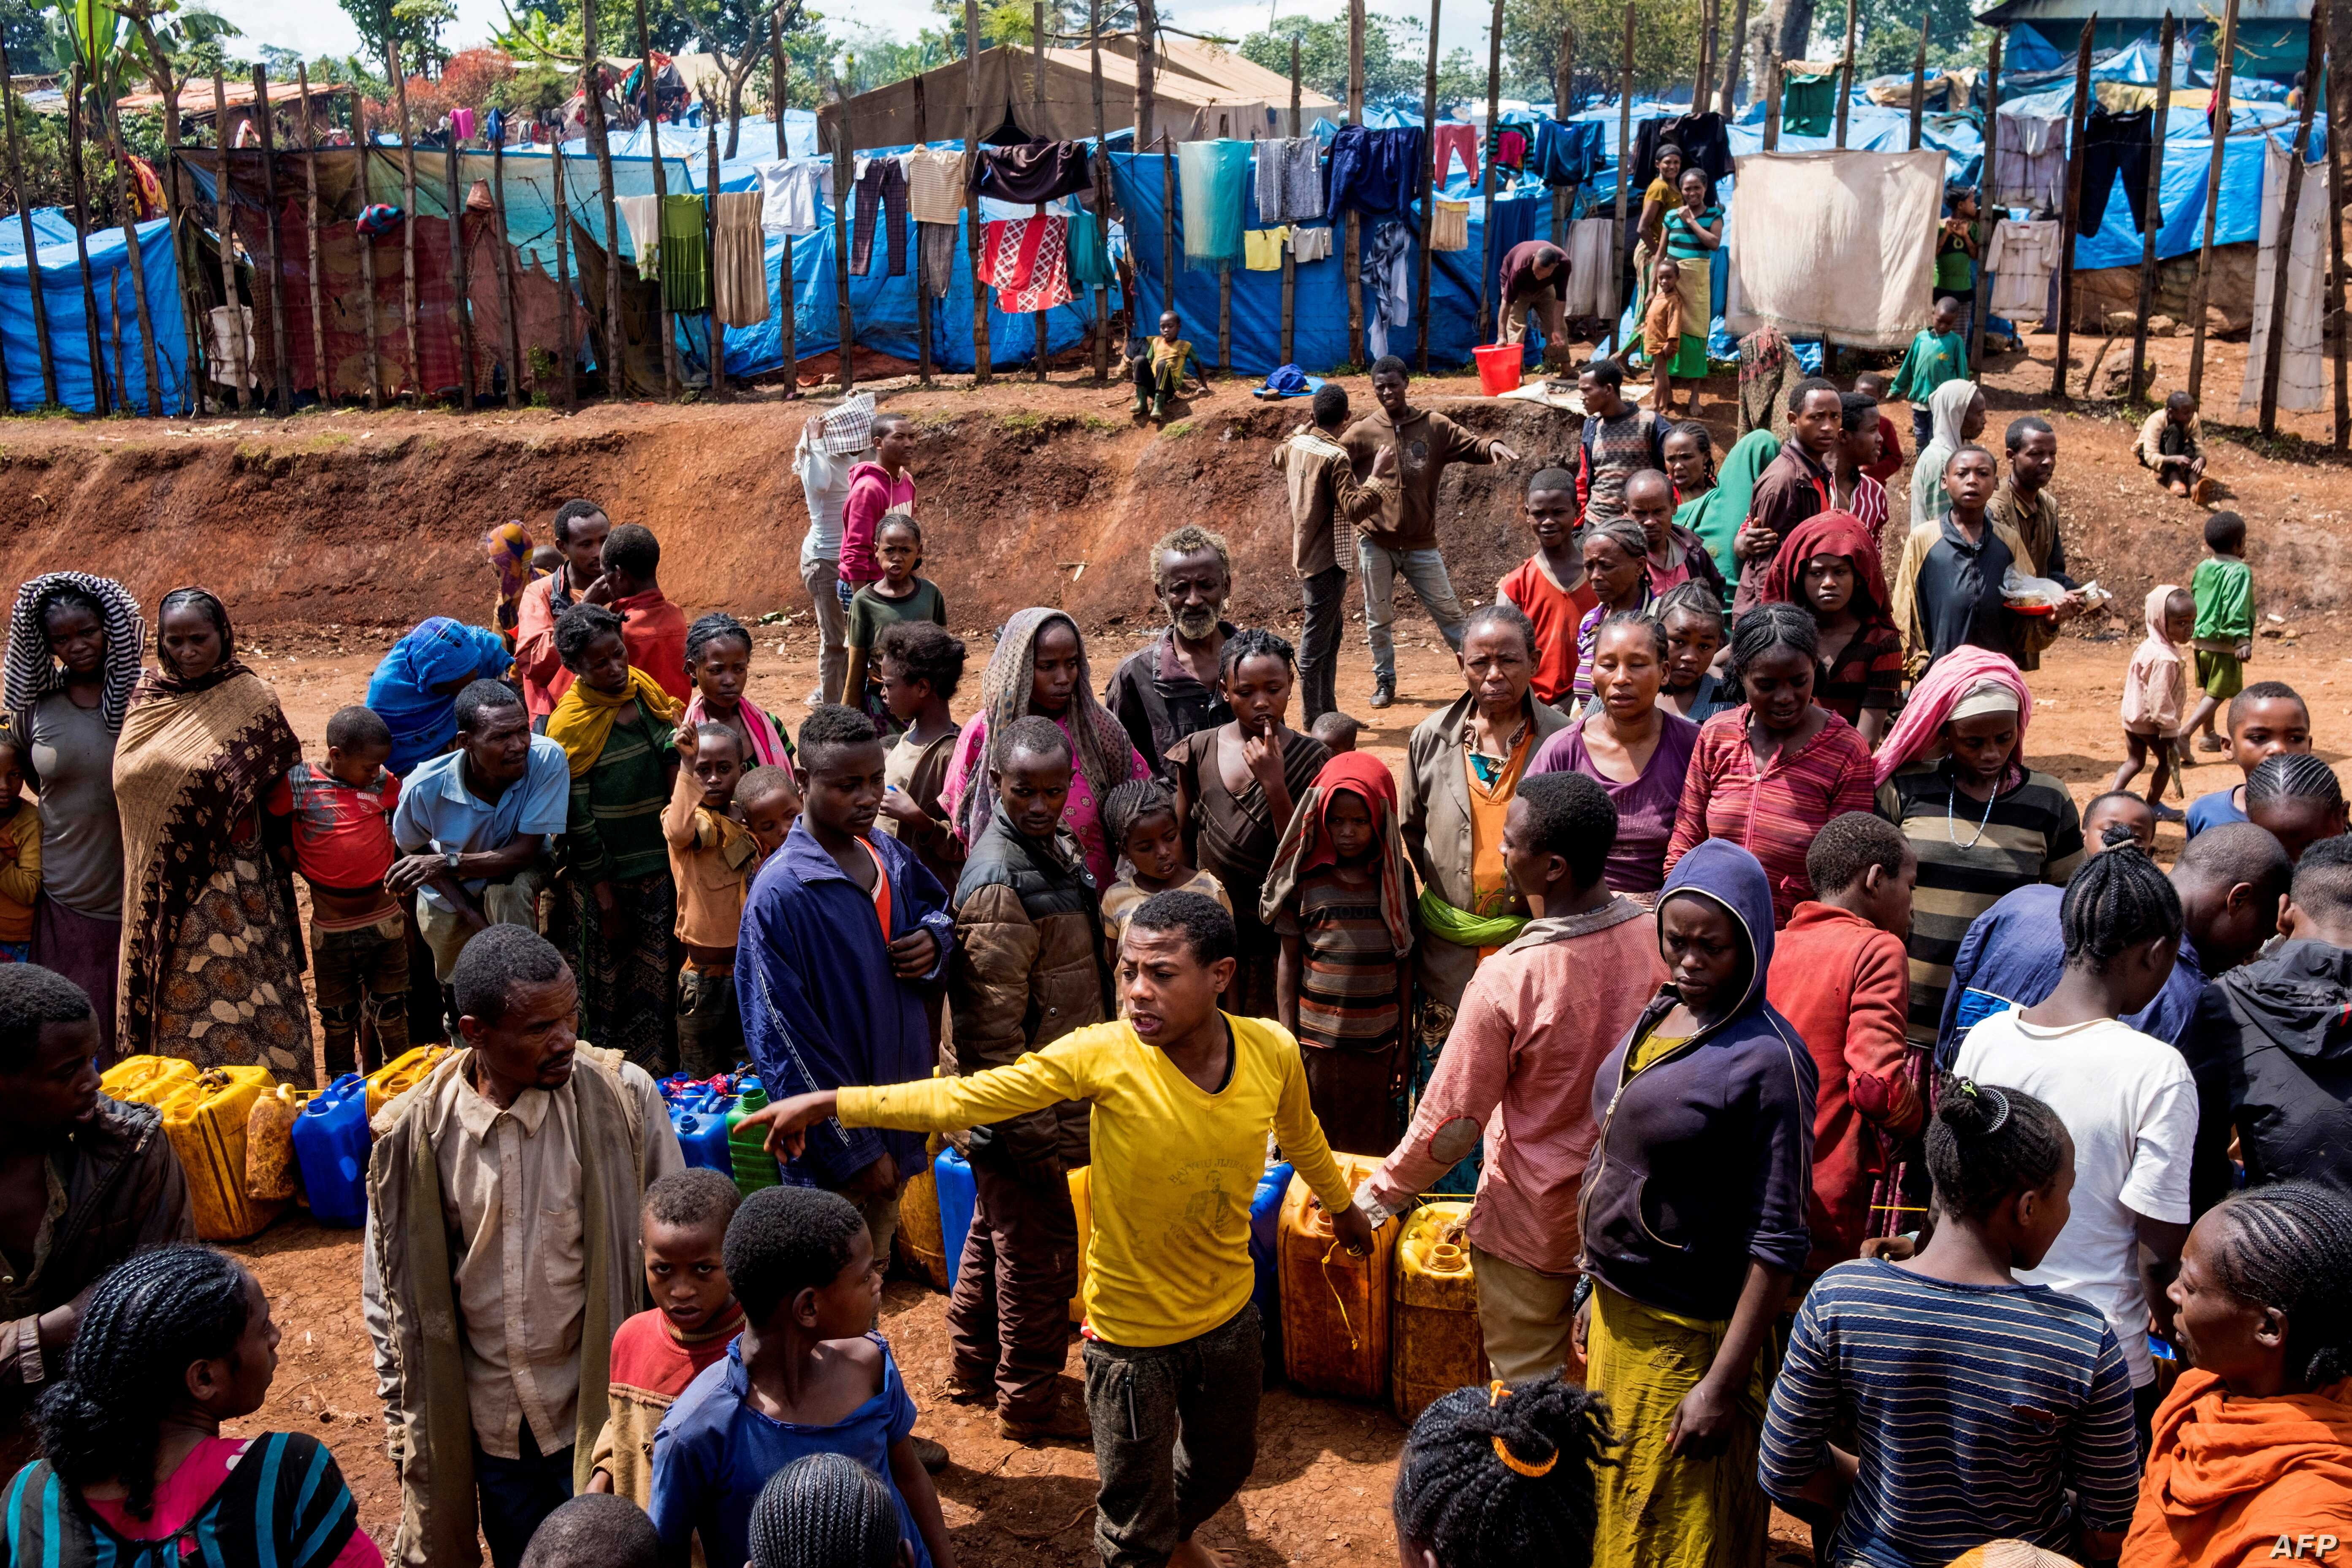 Displaced Gedeo people wait in line with their containers looking for water at Kercha site, West Guji in Ethiopia, Aug. 1, 2018. Ethiopia's Prime Minister Abiy Ahmed's aggressive reform agenda has won praise, but analysts warn that shaking up Ethiopi...